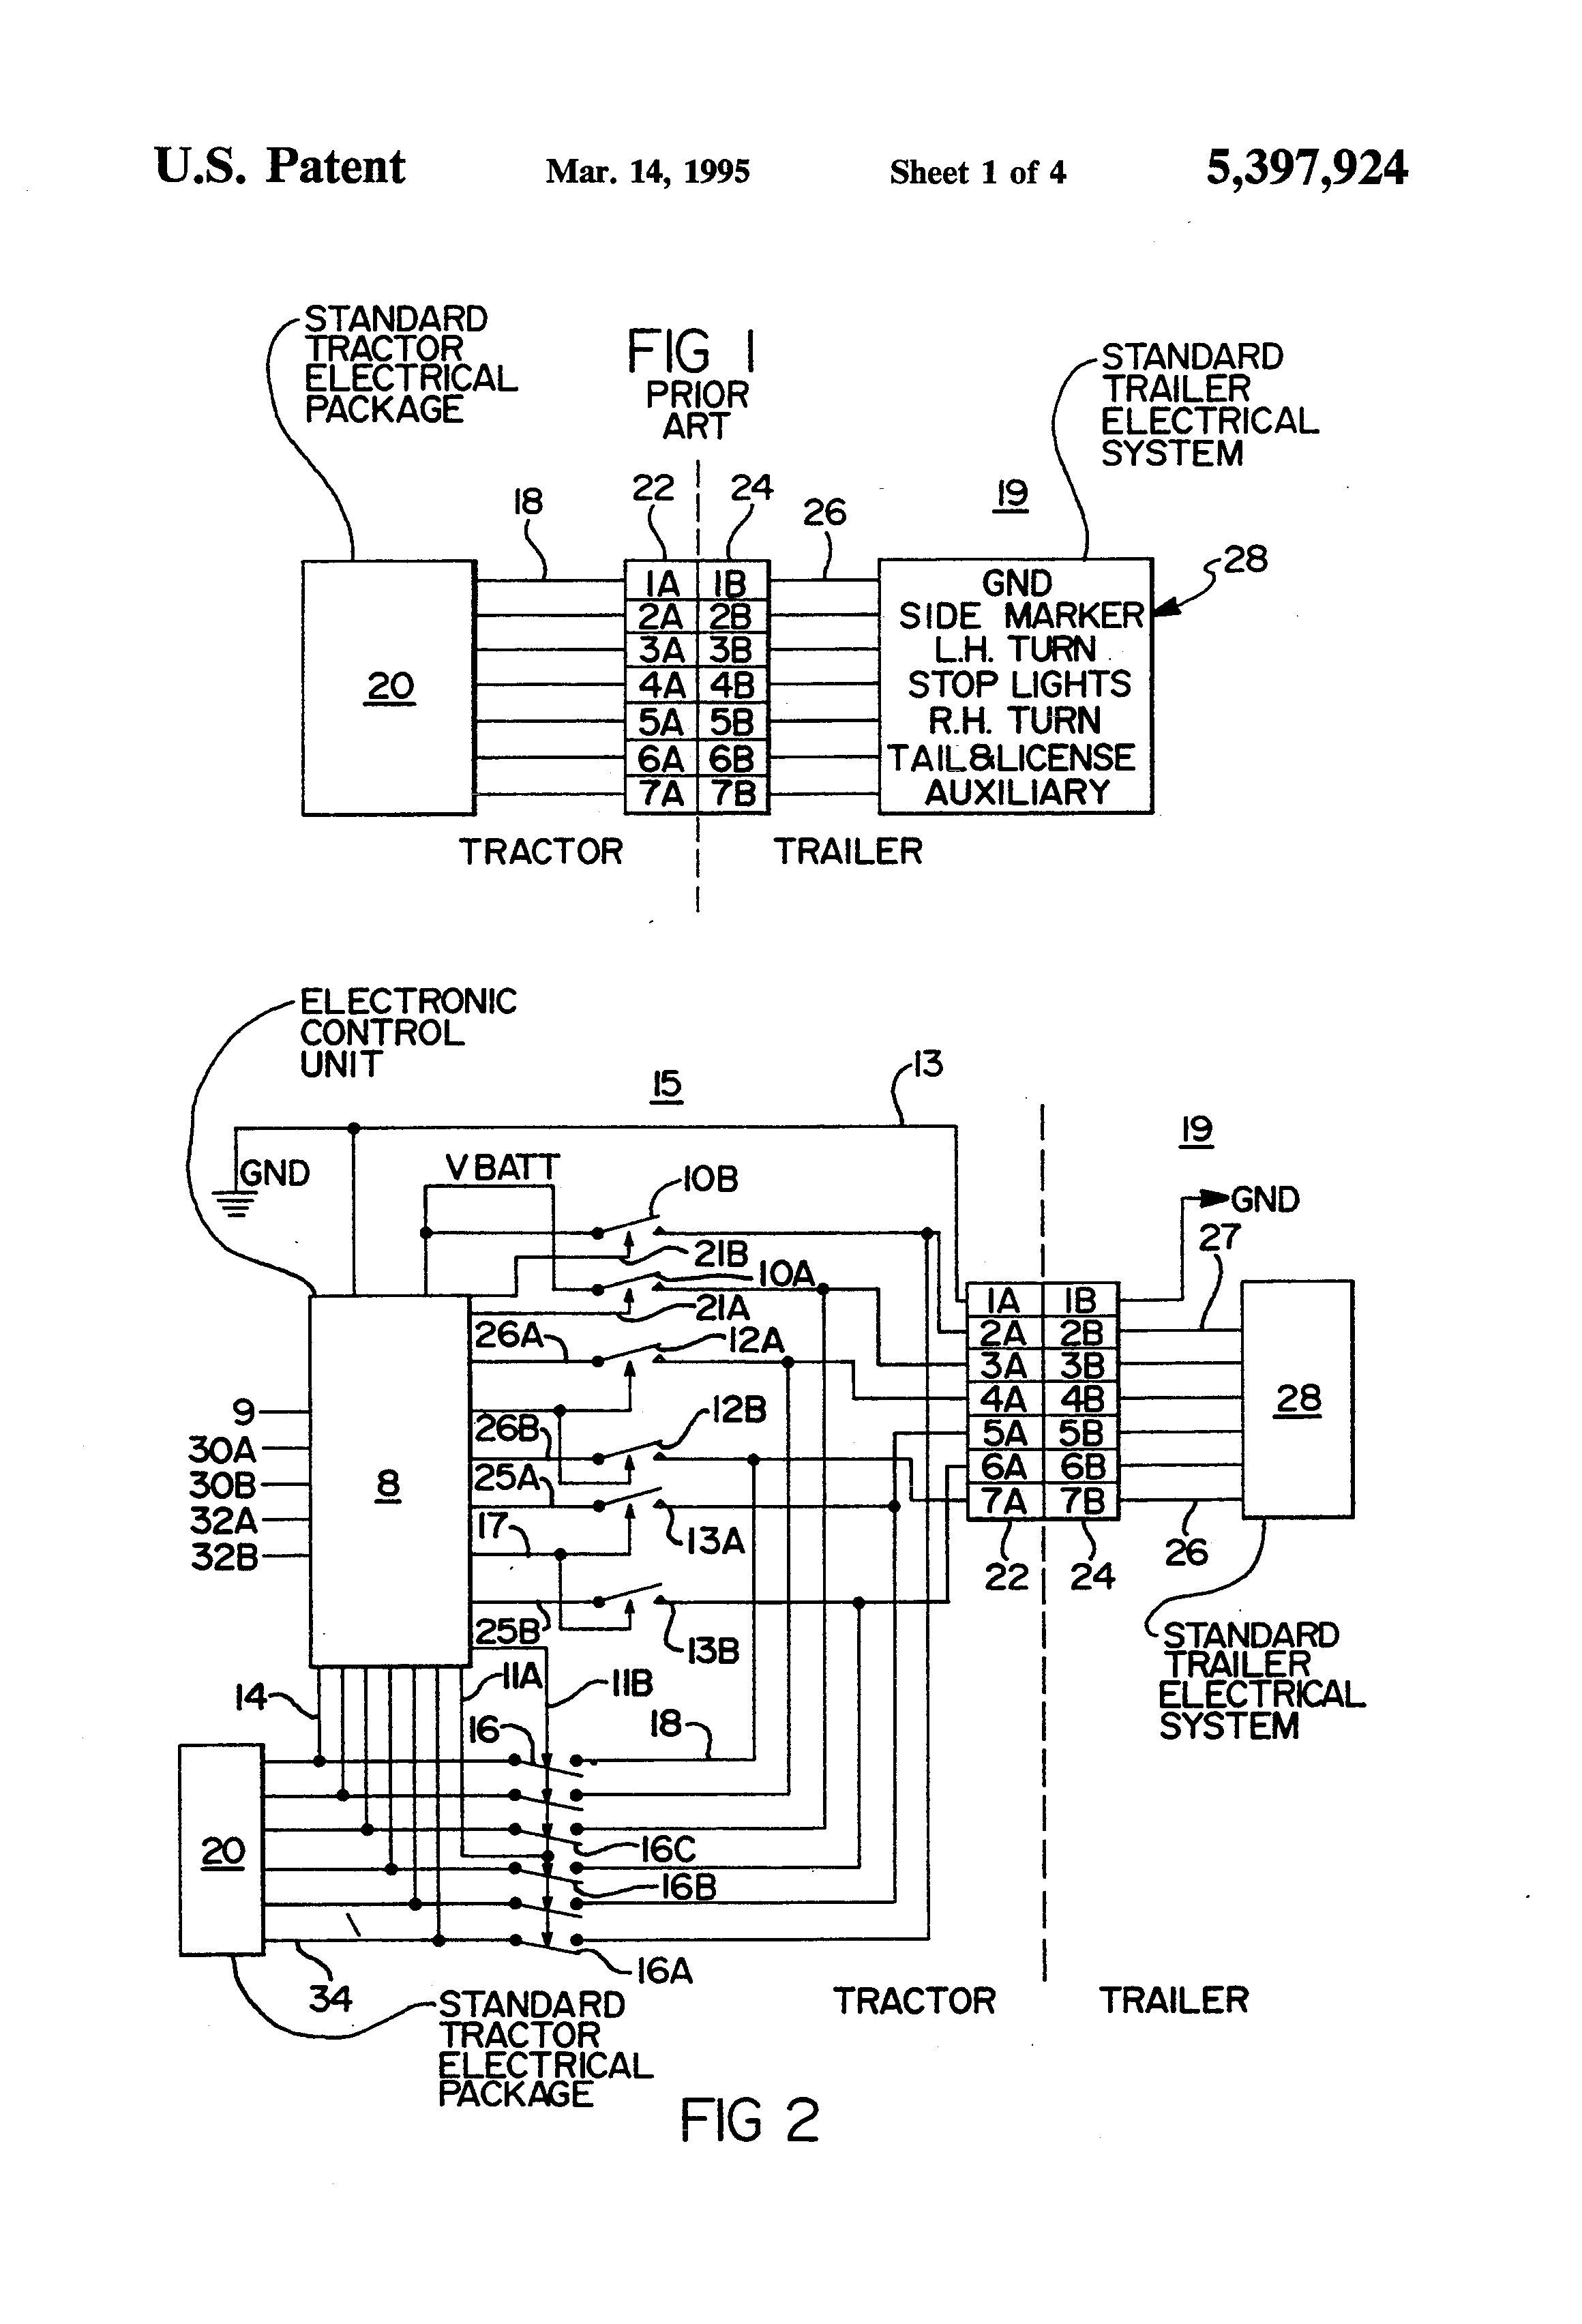 wabco wiring diagram color code wiring diagramwabco wiring diagram circuit diagram \\u0026 wiring diagramwabco abs wiring diagram wiring diagram z4 semi